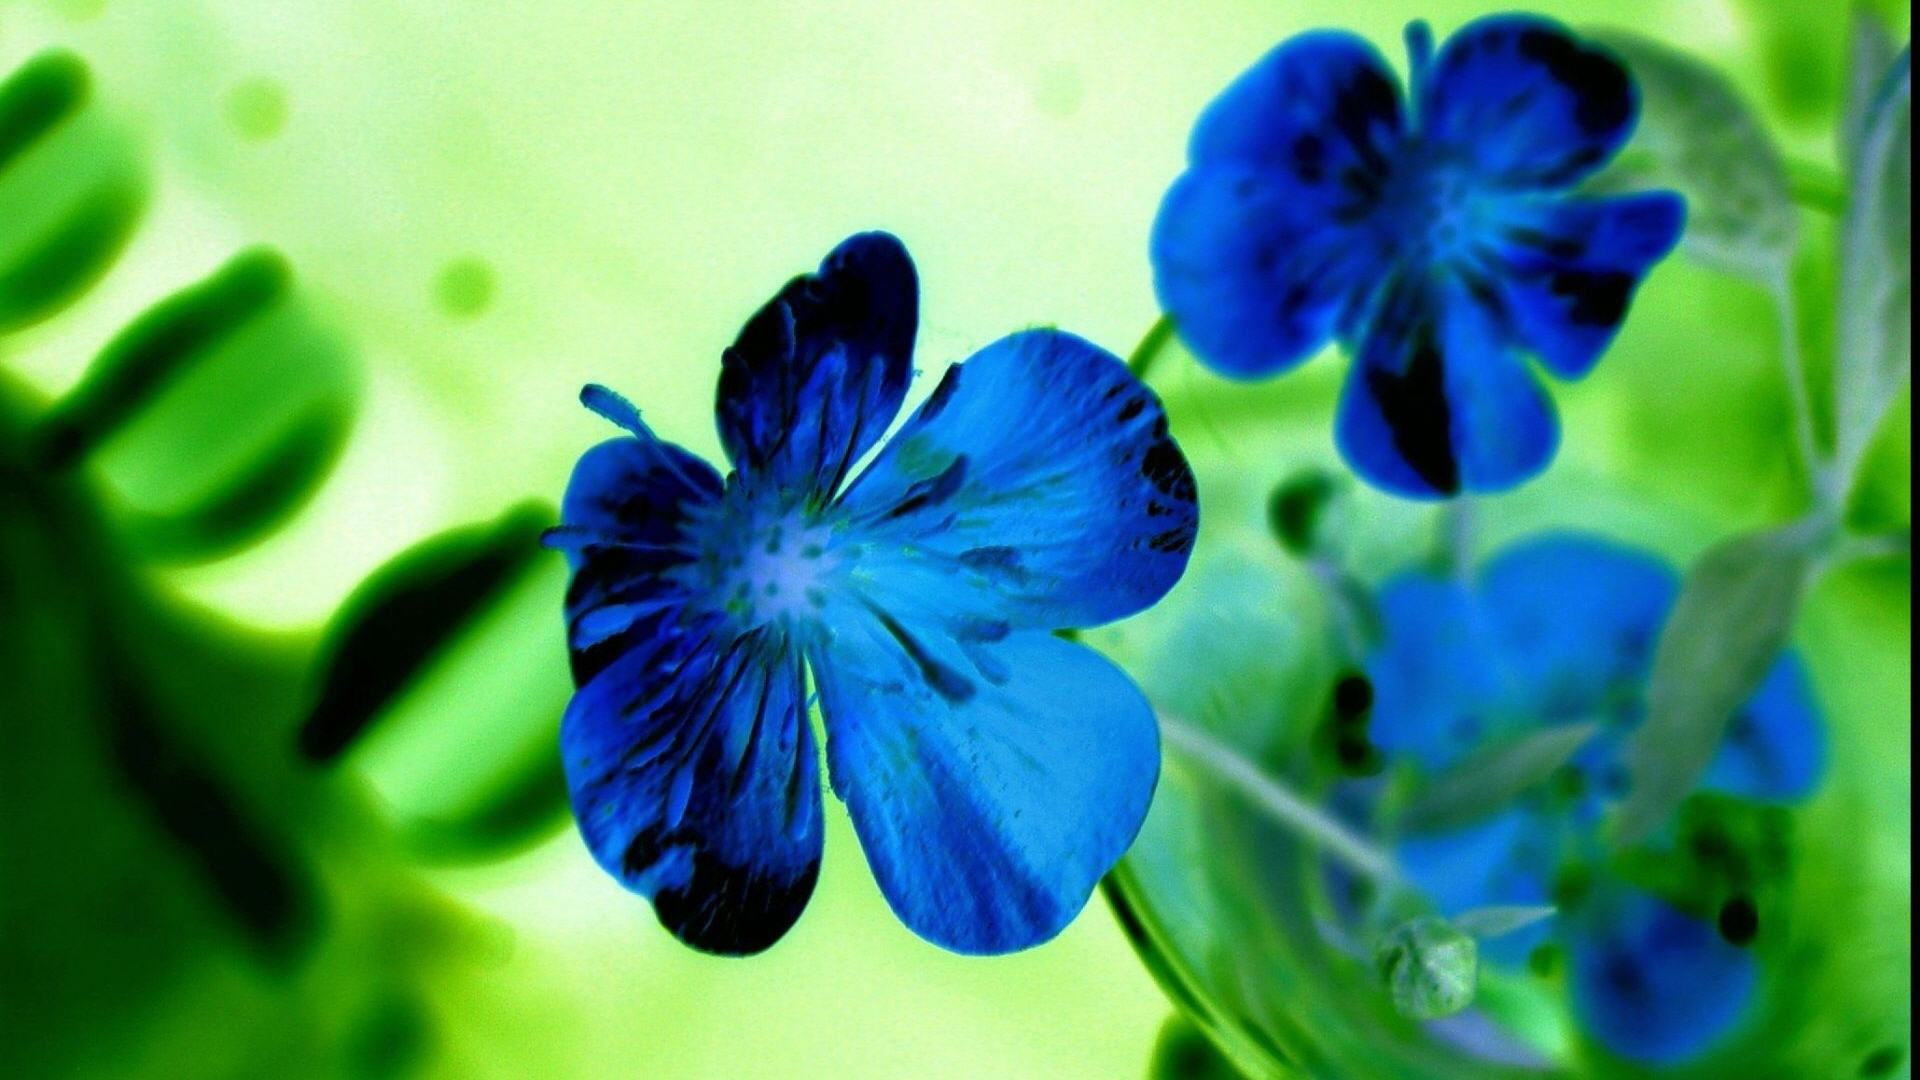 Group of beautiful flowers wallpapers 42 blue flowers hd wallpapers 42 free wallpaper hdflowerwallpaper 42 amazing and beautiful flowers photographs izmirmasajfo